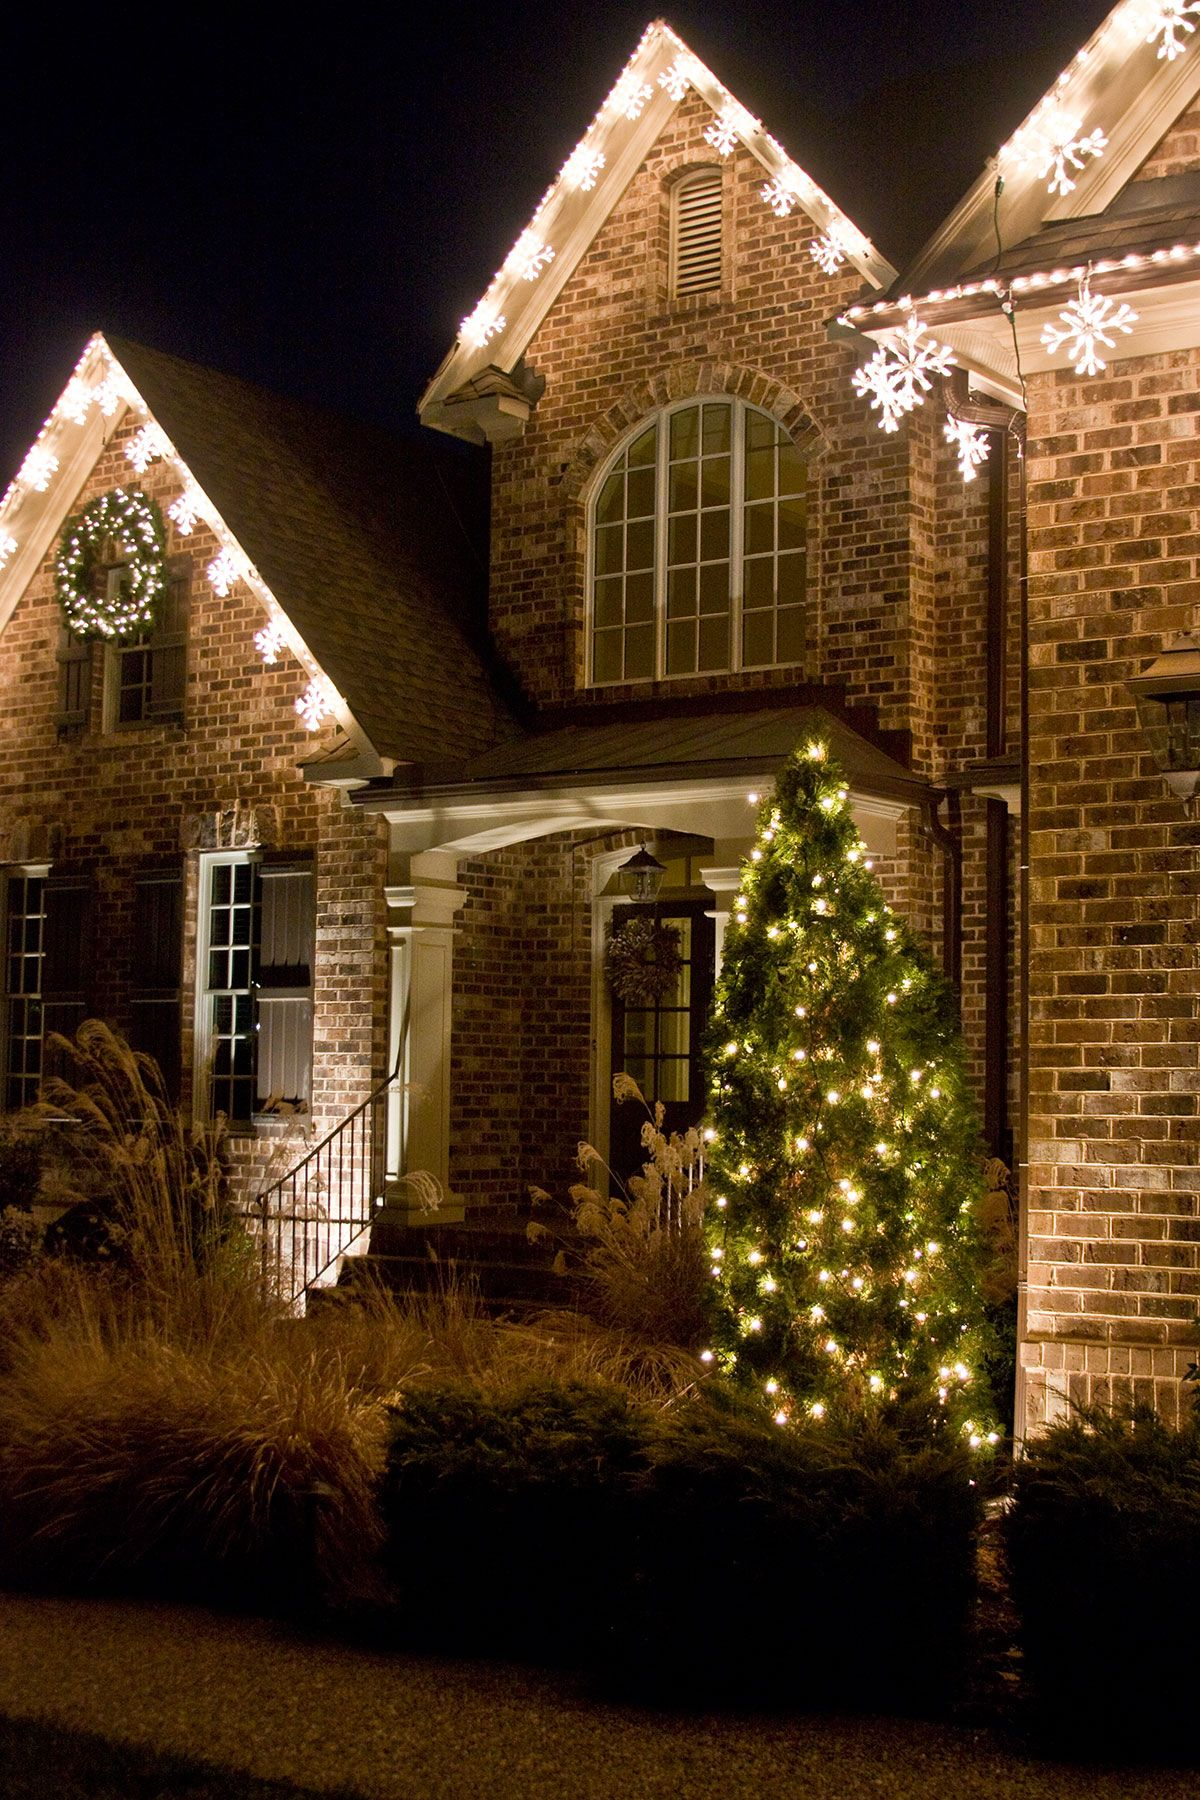 Snowflake Outdoor Lights Star light star bright first star we see tonight is courtesy of star light star bright first star we see tonight is courtesy of outdoor lighting workwithnaturefo